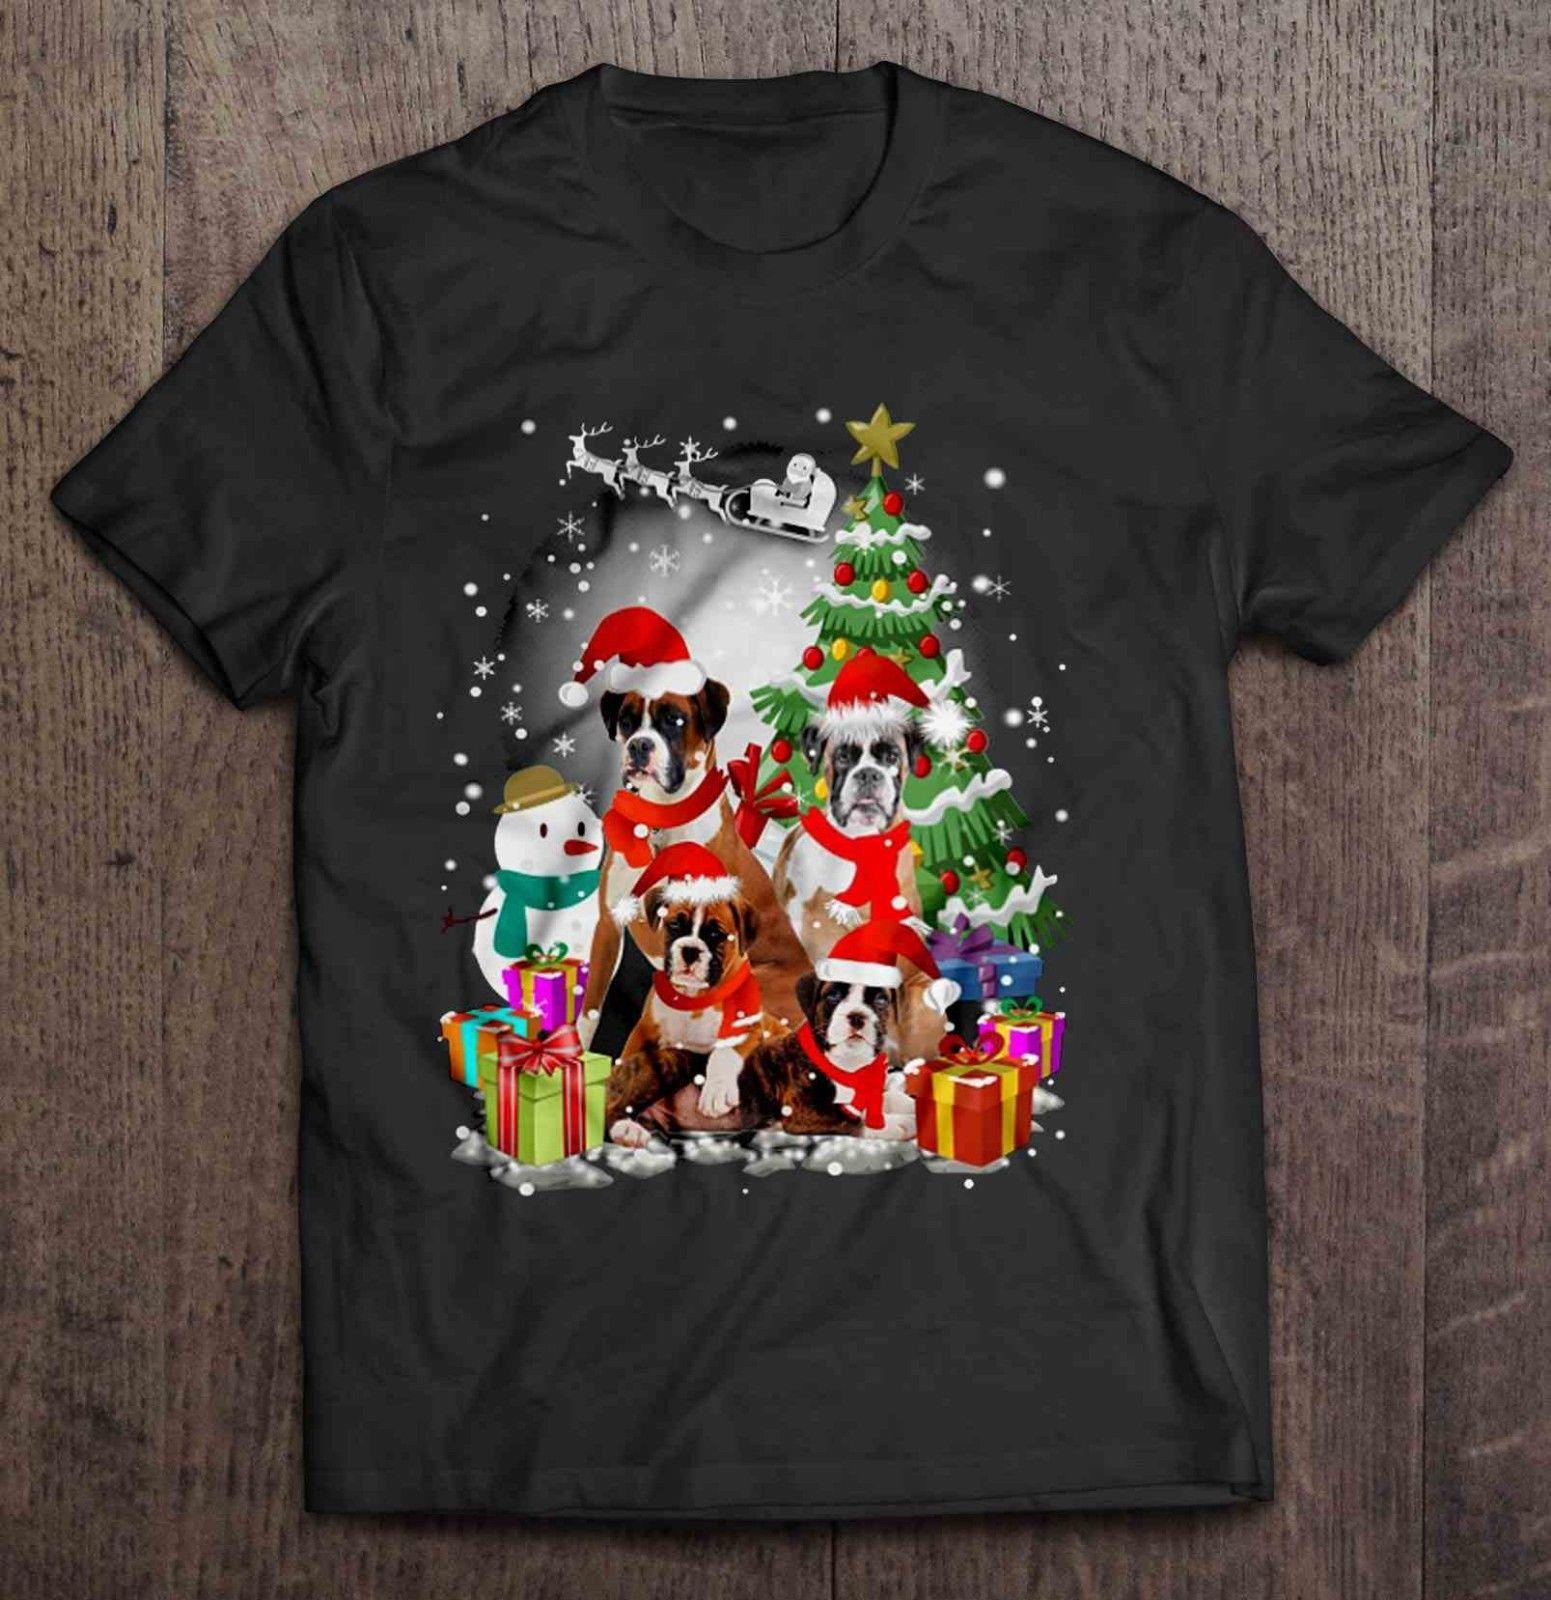 1ffdef67354a7 Boxer Family Christmas Xmas Holiday Gift Ideas S-3XL Official T-Shirt New T  Shirt Top Tee Mens 2018 New Tee